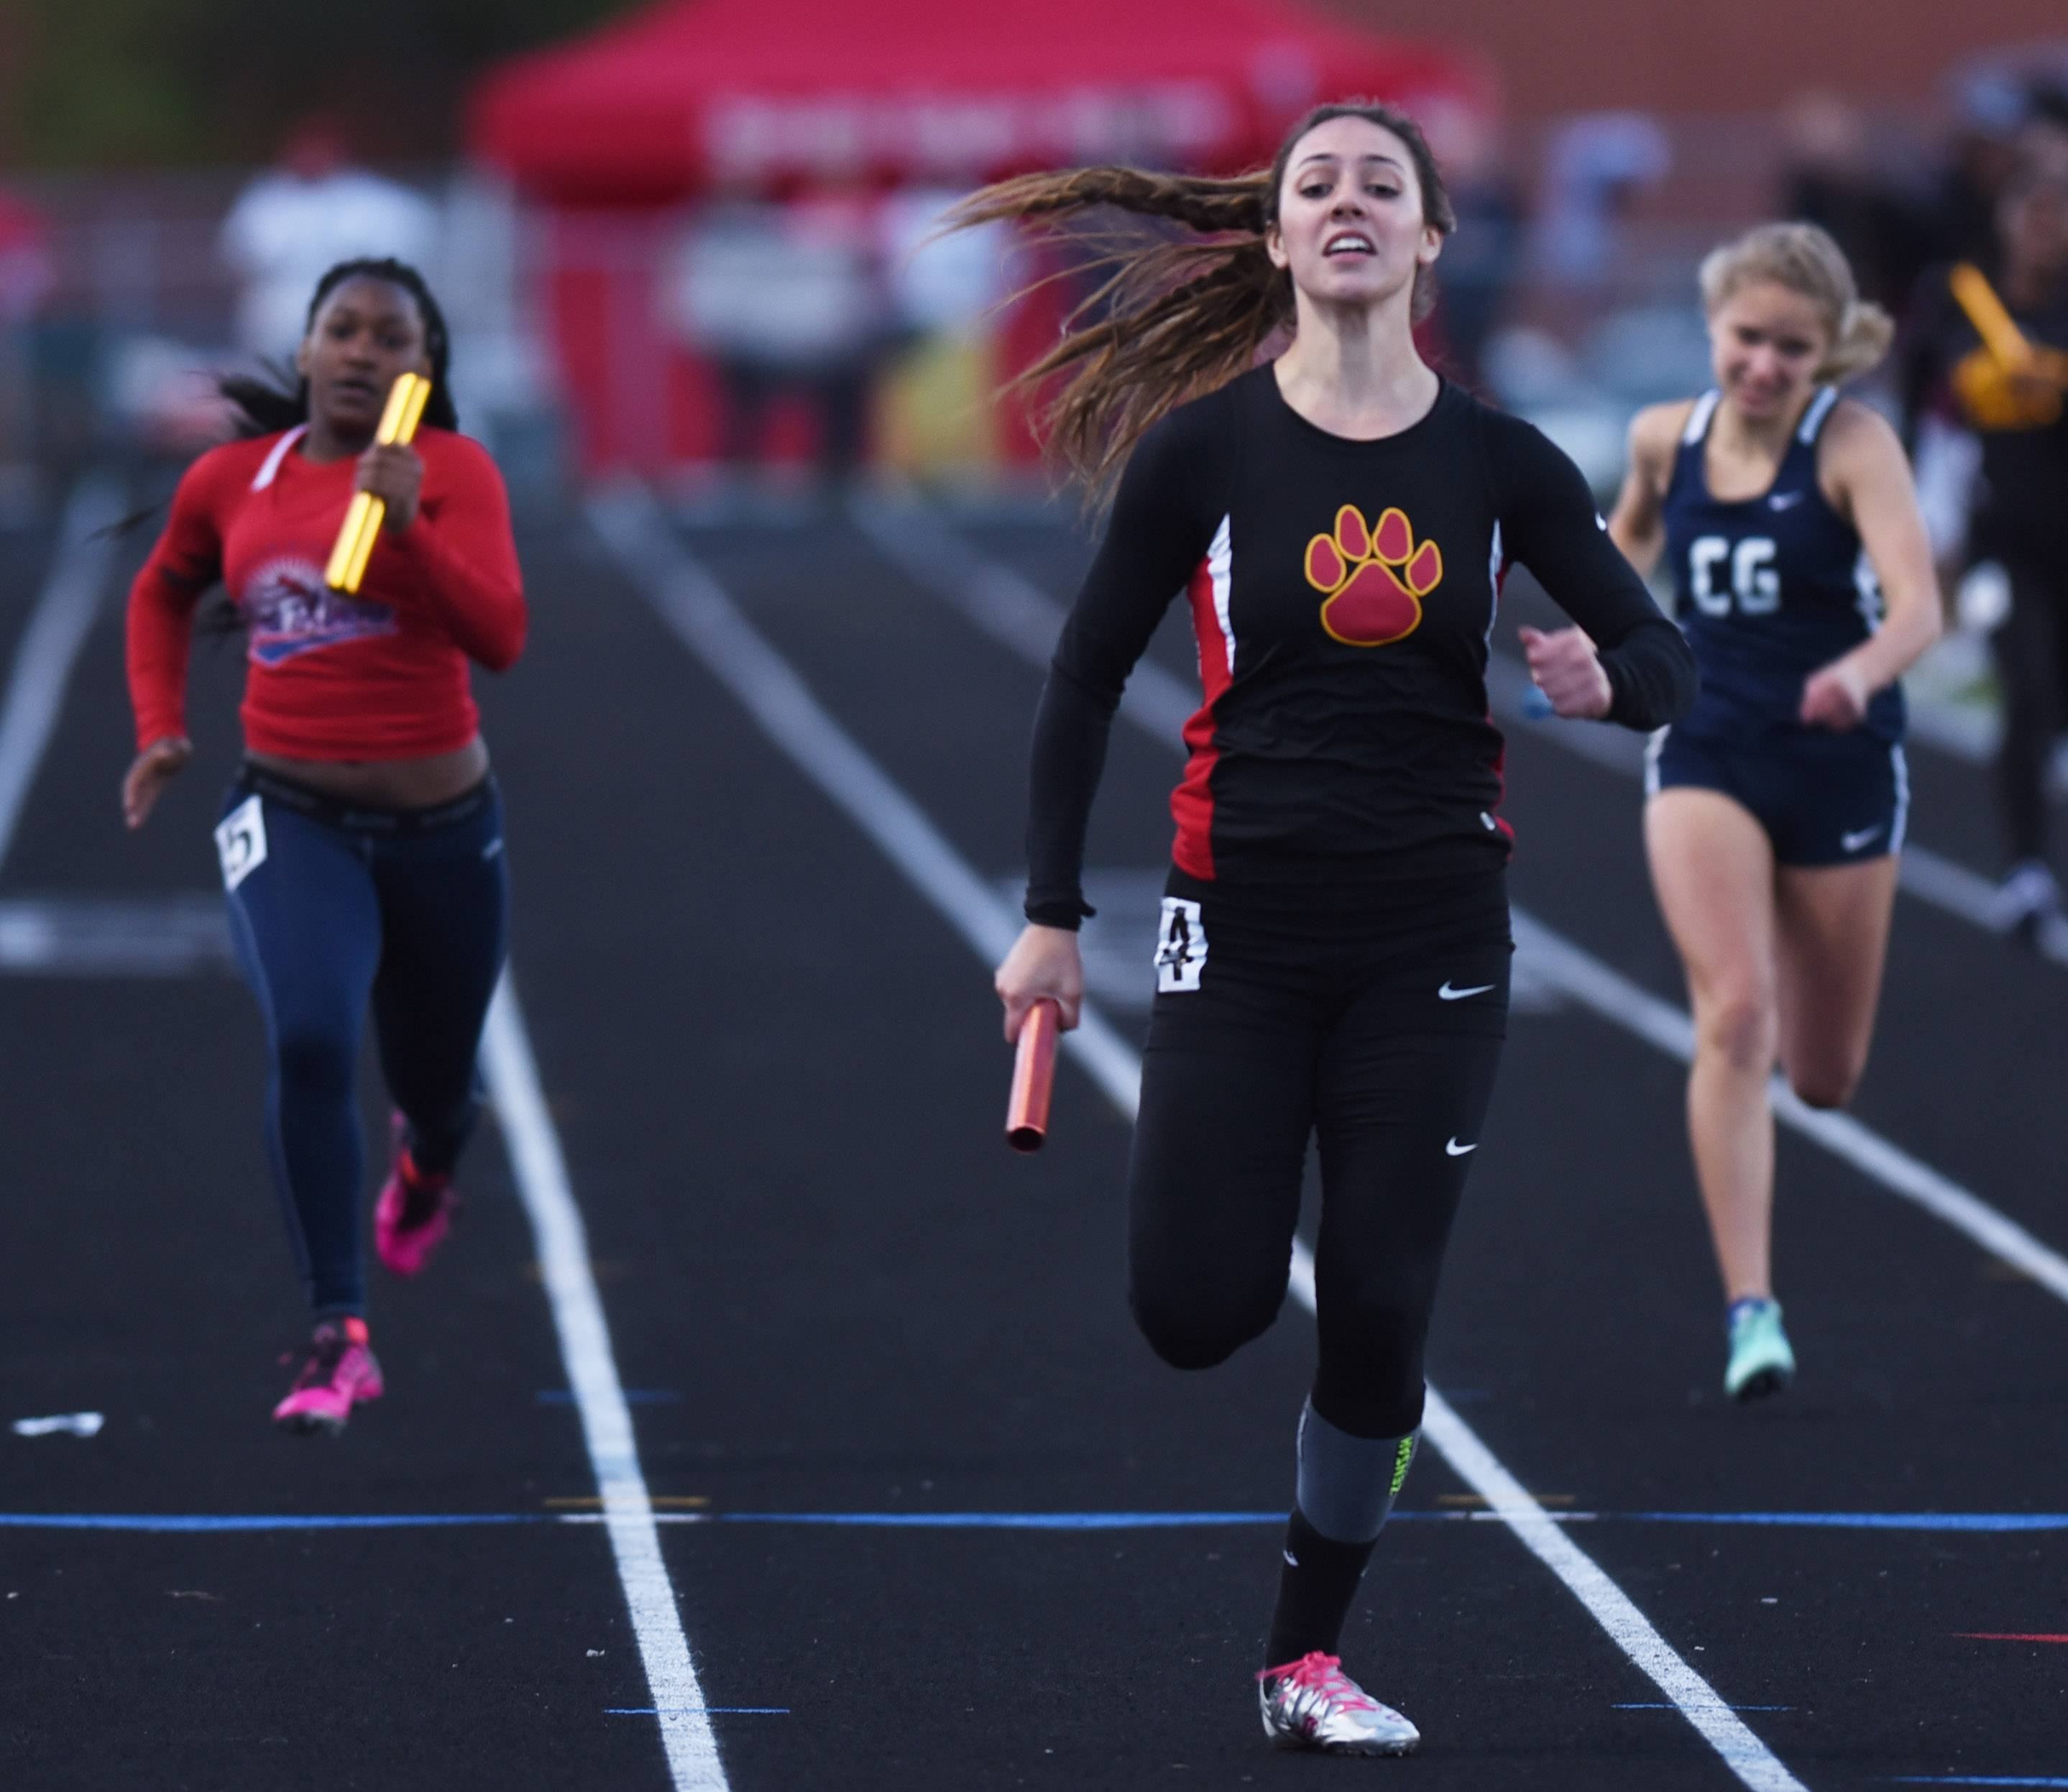 Batavia's Tori Ortiz crosses the finish line in first place as the anchor leg of the 800-meter relay at the Class 3A Bartlett girls track and field sectional meet at Millennium Field in Streamwood last week. Batavia won the event and will compete at the state final meet in Charleston this weekend.